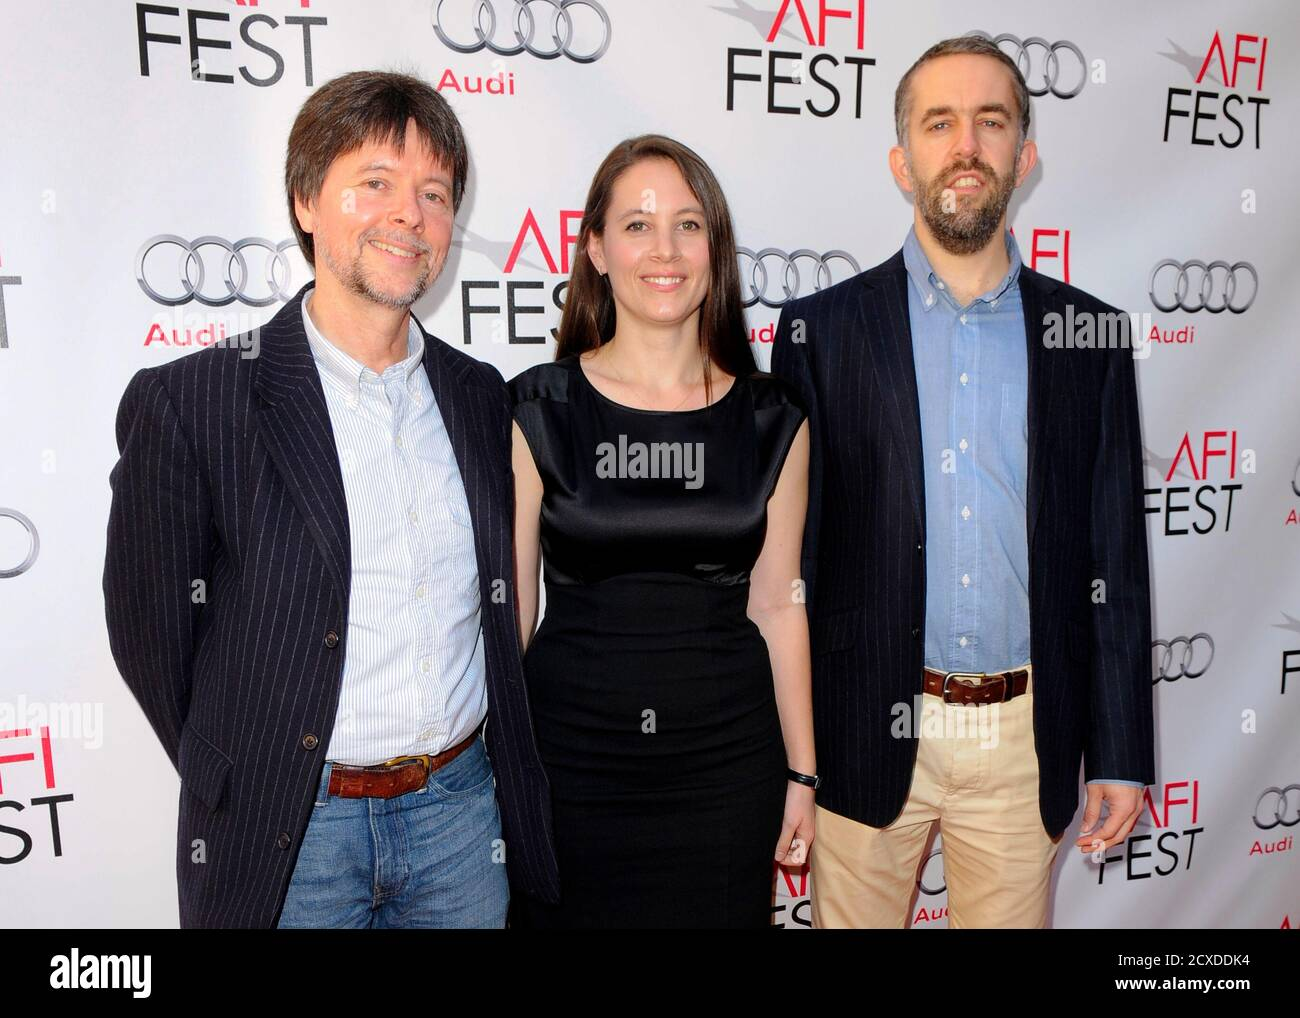 Ken Burns And Sarah Burns High Resolution Stock Photography And Images Alamy